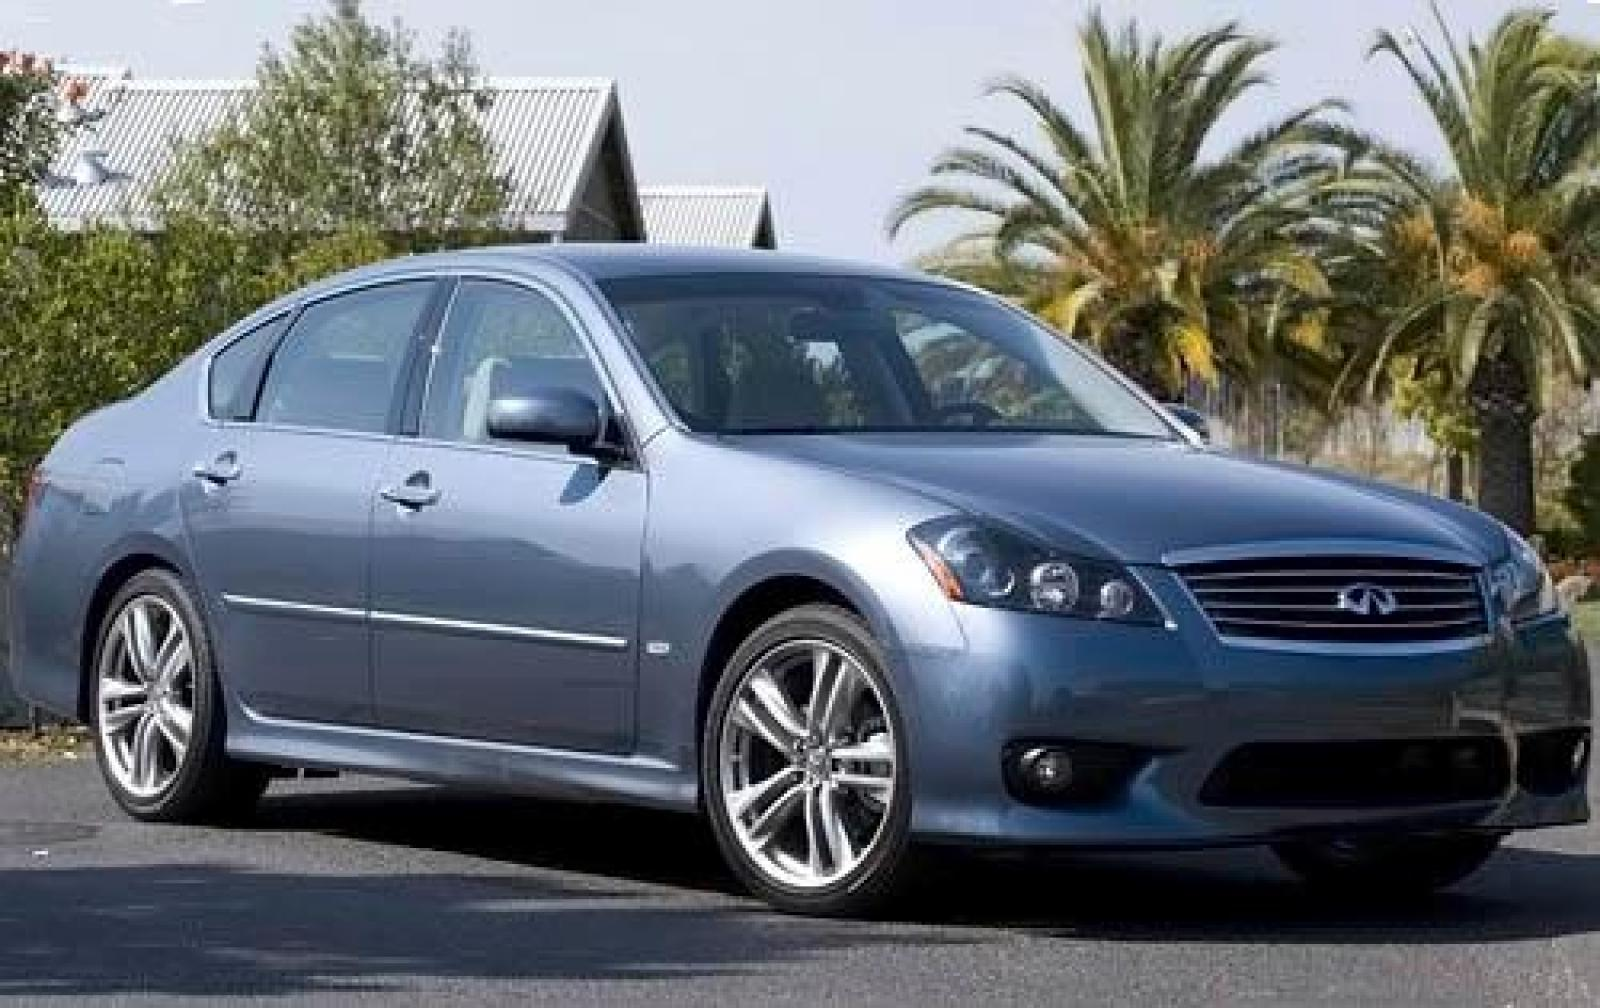 2010 infiniti m35 information and photos zombiedrive infiniti gallery vanachro Image collections